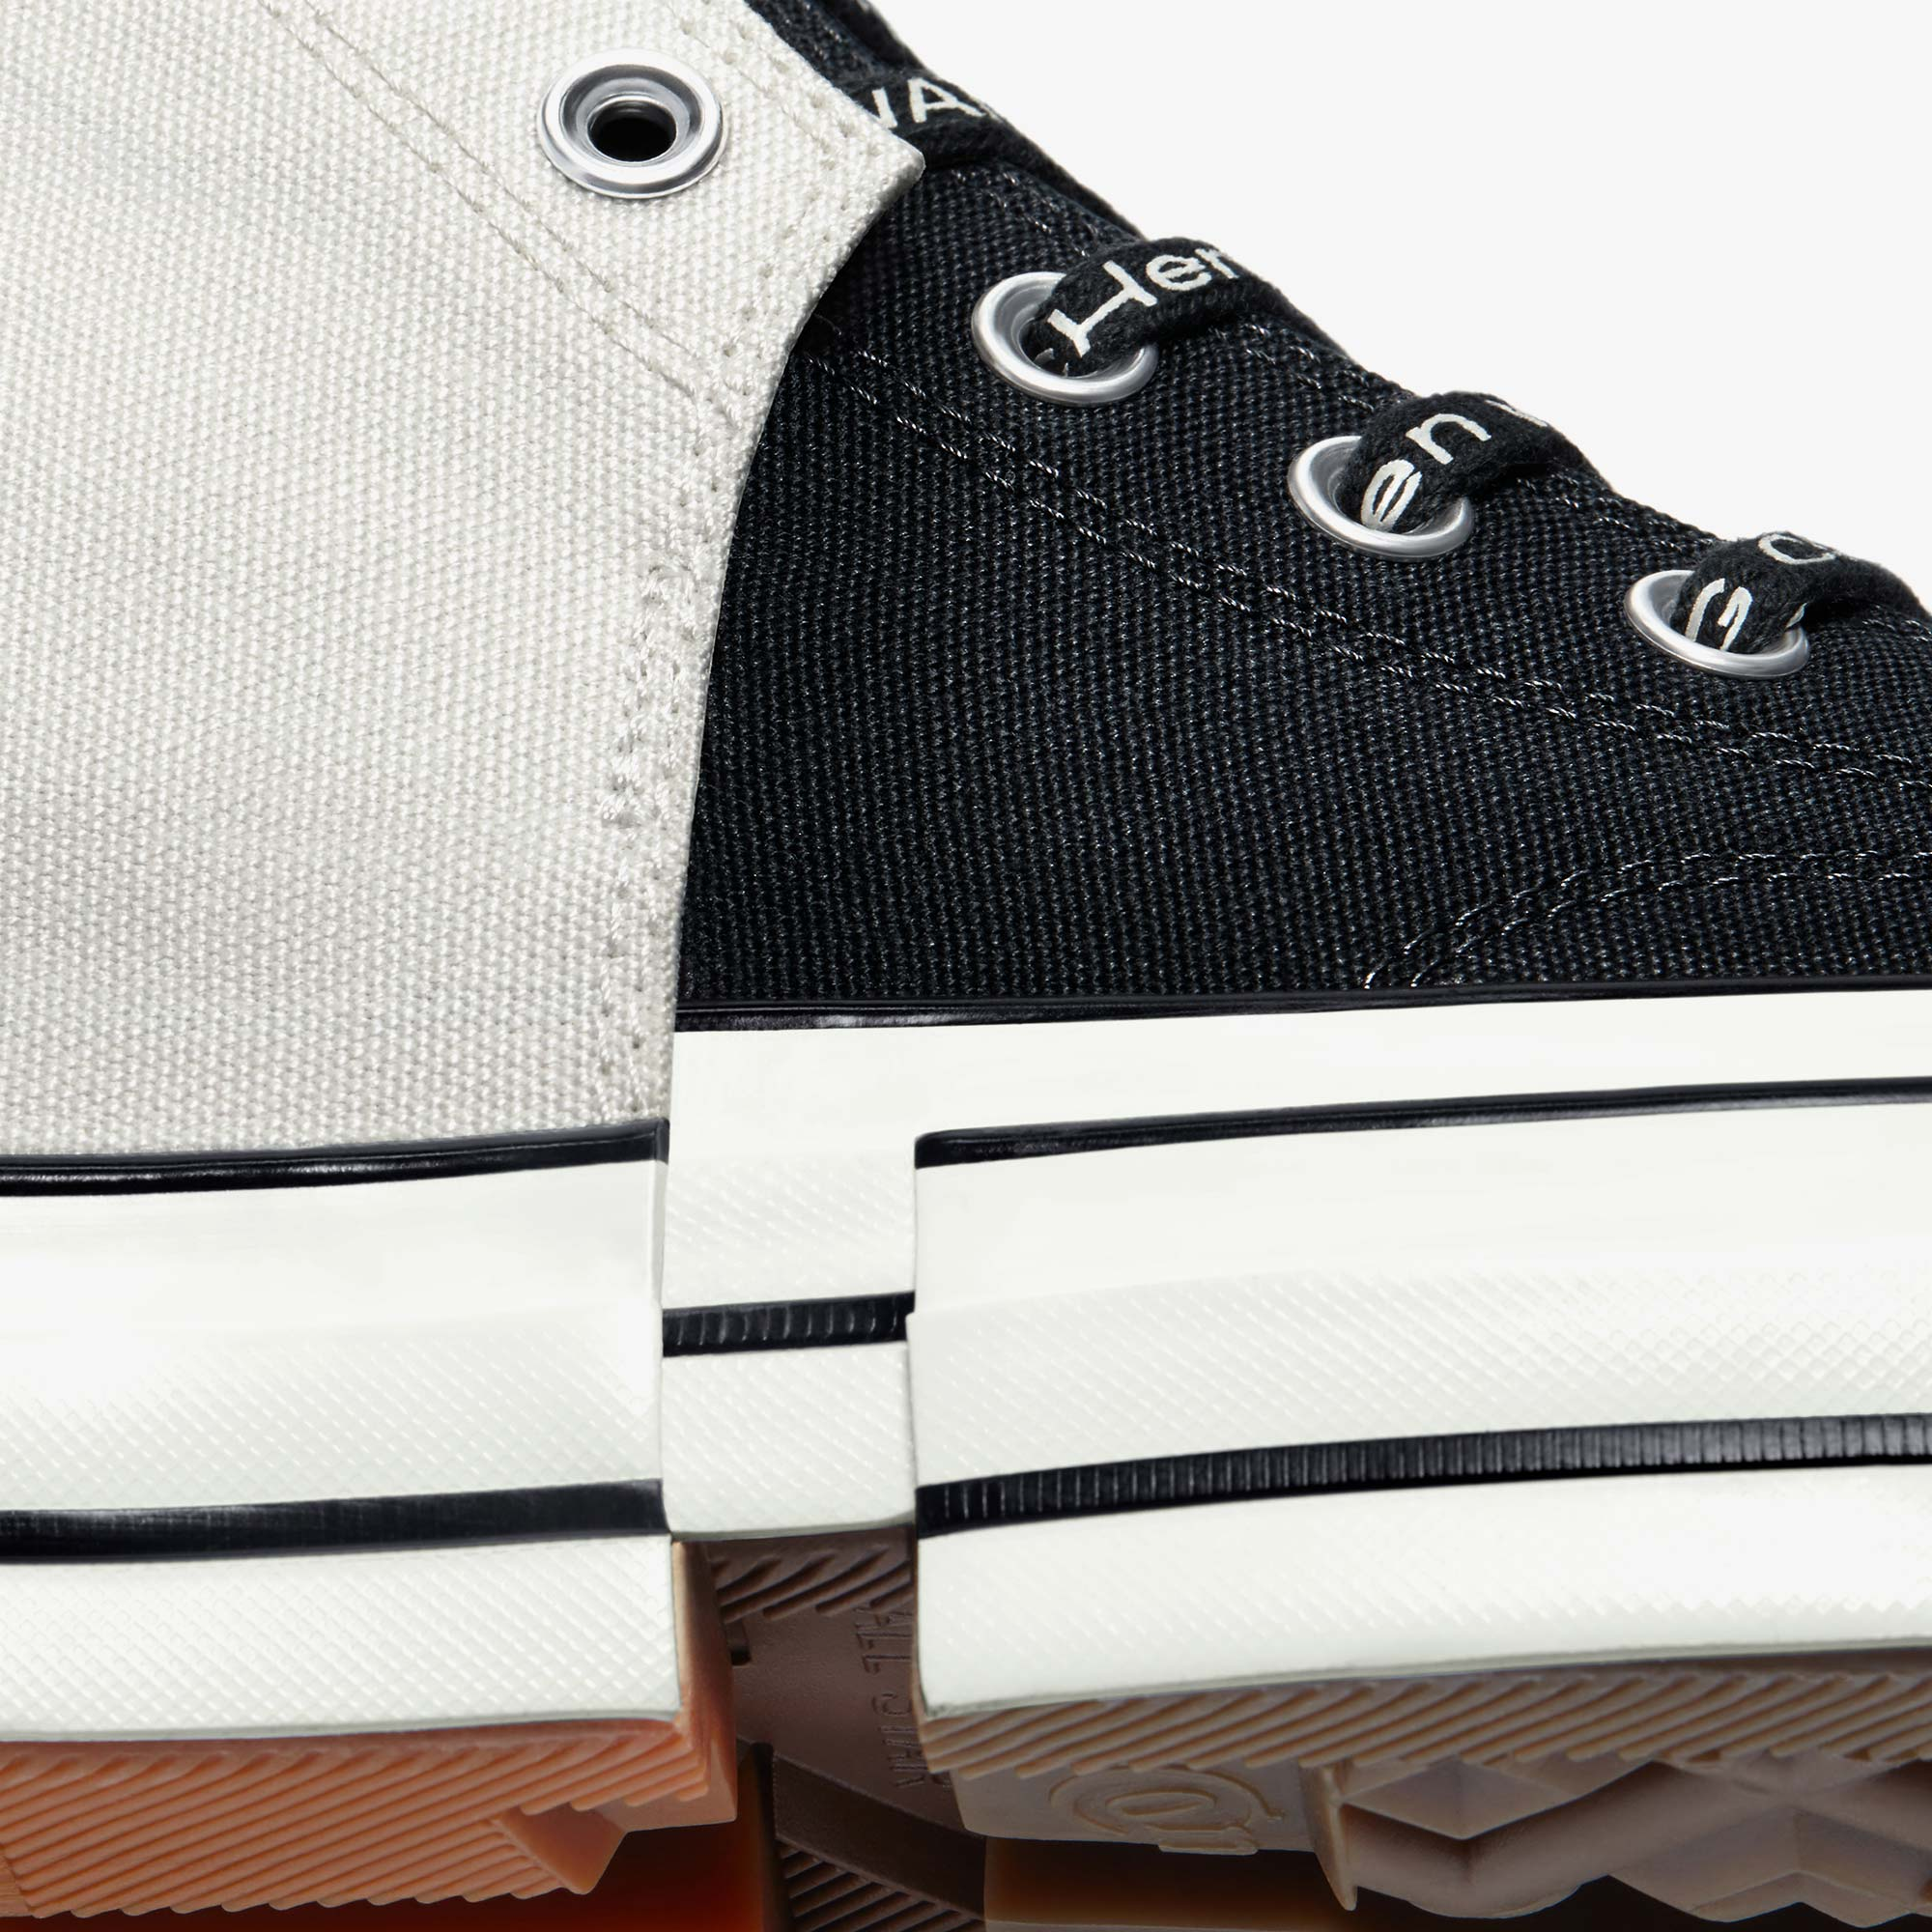 Converse Converse x Feng Chen Wang 2 In 1 Chuck Taylor 70 Hi - Ivory 4